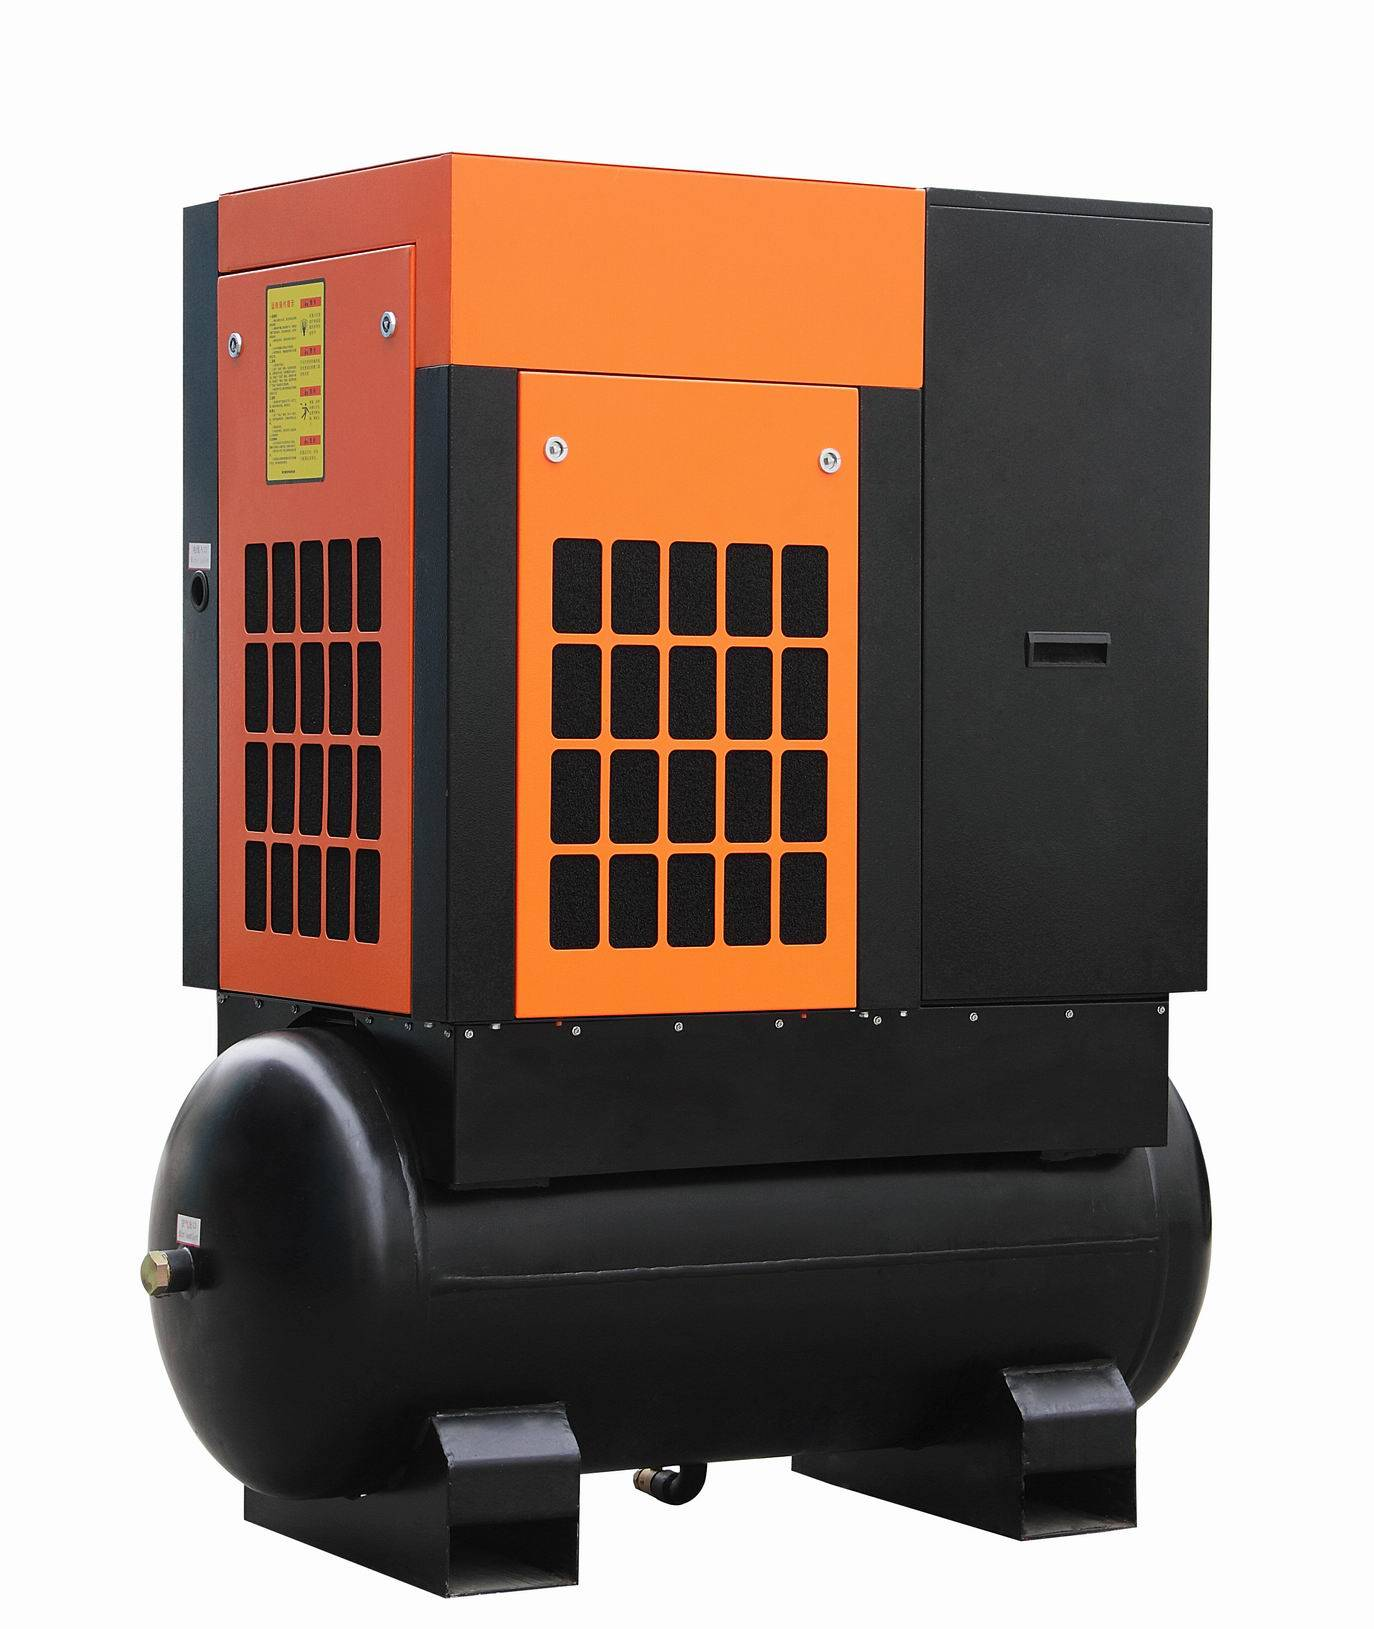 15kw/20HP China Champion Air Compressor with Tank and Dryer